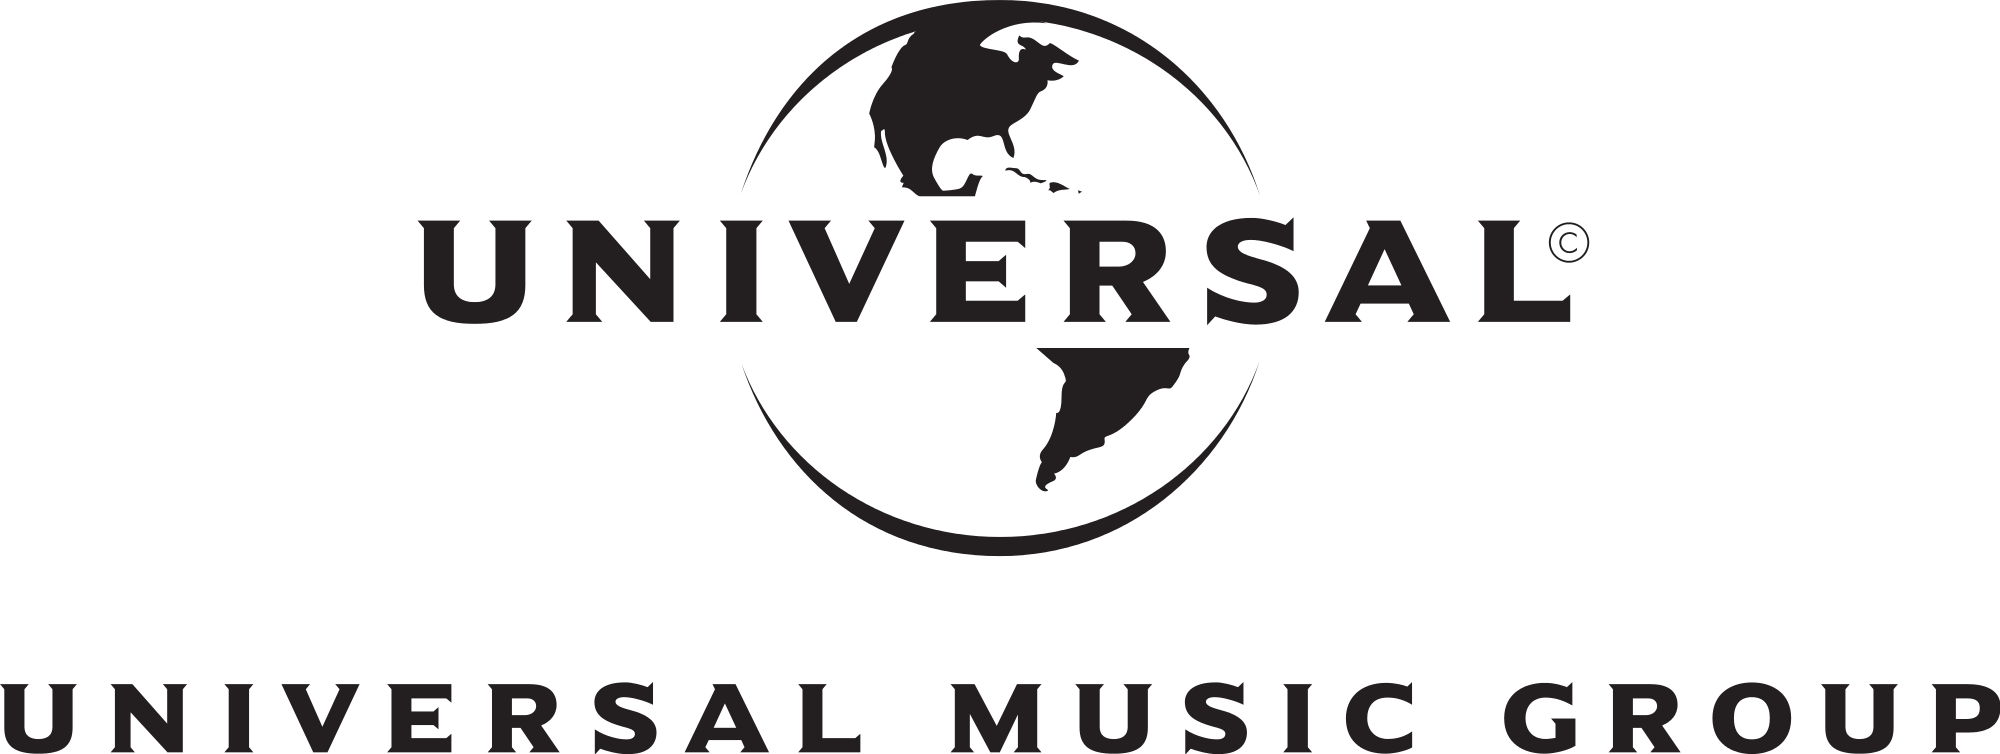 Universal Logo 2014 Featured Job Posting: ...